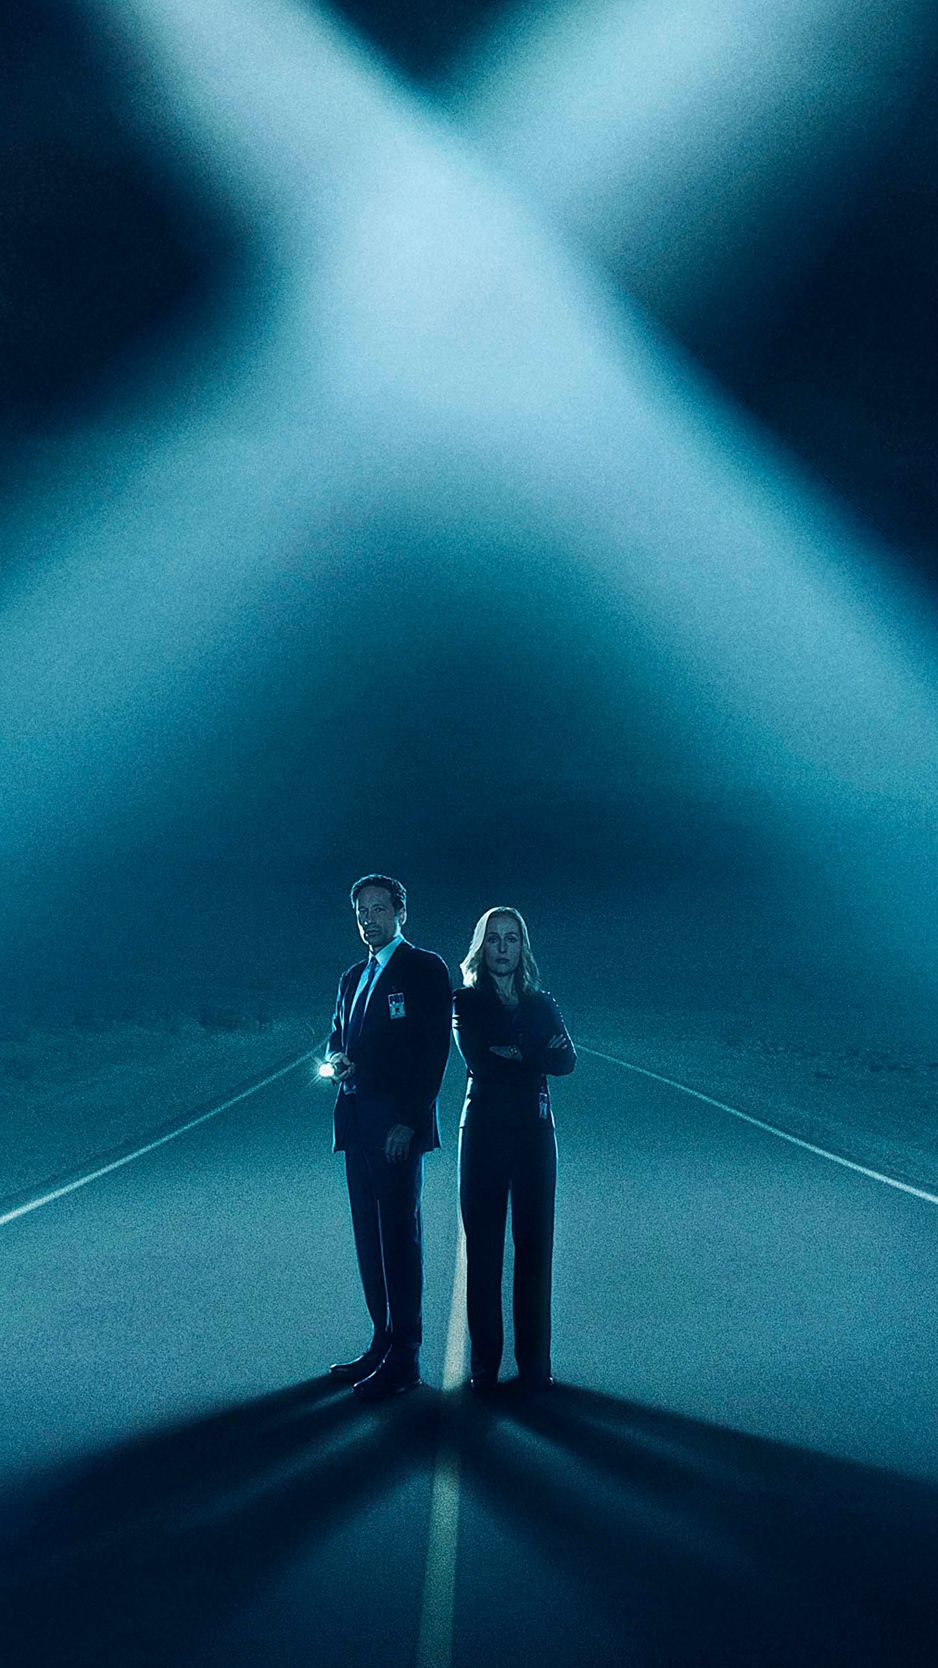 Pin by Deanna Chamberstoo on XFiles Iphone